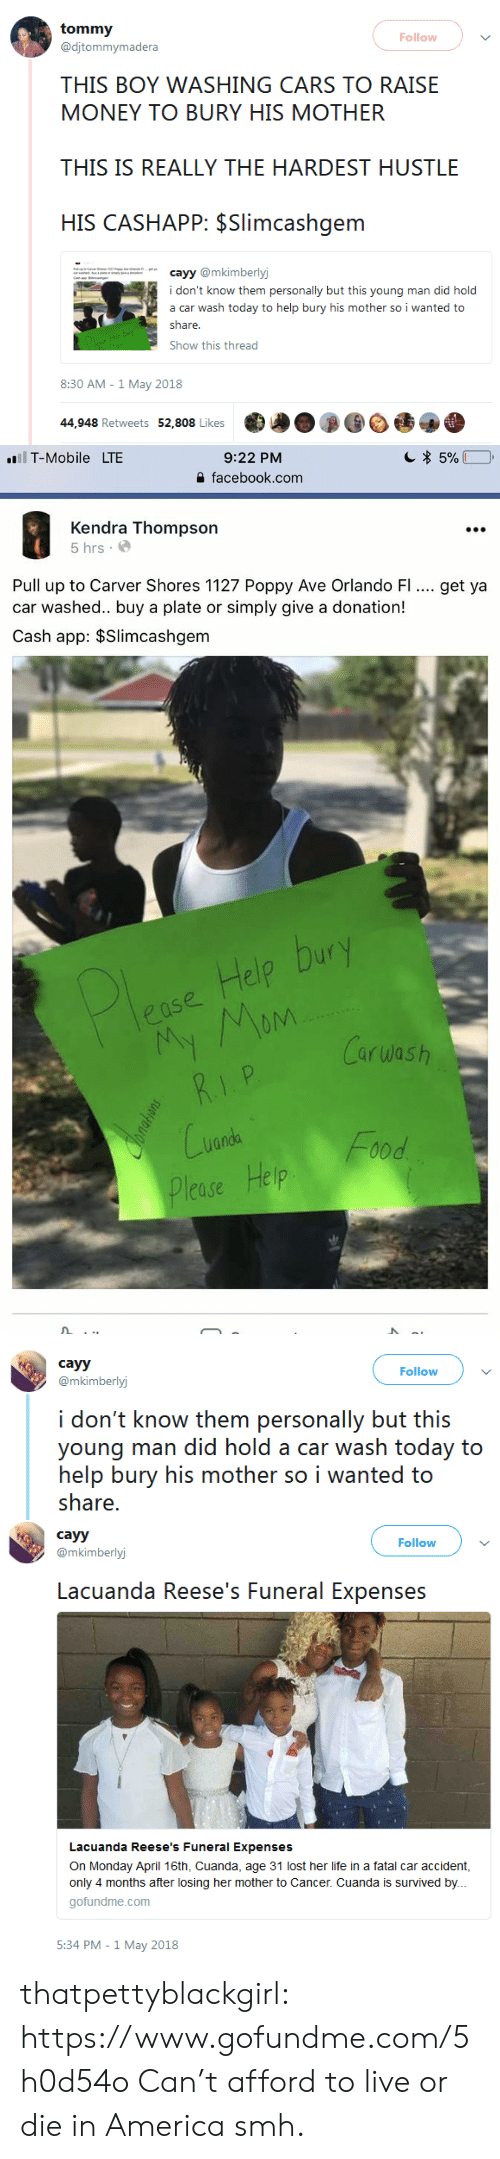 poppy: Follow  @djtommymadera  THIS BOY WASHING CARS TO RAISE  MONEY TO BURY HIS MOTHER  THIS IS REALLY THE HARDEST HUSTLE  HIS CASHAPP: $Slimcashgem  cayy @mkimberly  i don't know them personally but this young man did hold  a car wash today to help bury his mother so i wanted to  estrae  Show this thread  8:30 AM -1 May 2018  44,948 Retweets 52,808 Likes   9:22 PM  을 facebook.com  1T-Mobile  LTE  Kendra Thompson  5 hrs.  Pull up to Carver Shores 1127 Poppy Ave Orlando FI.. get ya  car washed.. buy a plate or simply give a donation!  Cash app: $Slimcashgem  elo  Carwash  nda  lease Help   cayy  @mkimberlyj  Follow  i don't know them personally but this  young man did hold a car wash today to  help bury his mother so i wanted to  share.   cayy  @mkimberlyj  Follow  Lacuanda Reese's Funeral Expenses  Lacuanda Reese's Funeral Expenses  On Monday April 16th, Cuanda, age 31 lost her life in a fatal car accident,  only 4 months after losing her mother to Cancer. Cuanda is survived by.  gofundme.com  5:34 PM -1 May 2018 thatpettyblackgirl:  https://www.gofundme.com/5h0d54o Can't afford to live or die in America smh.